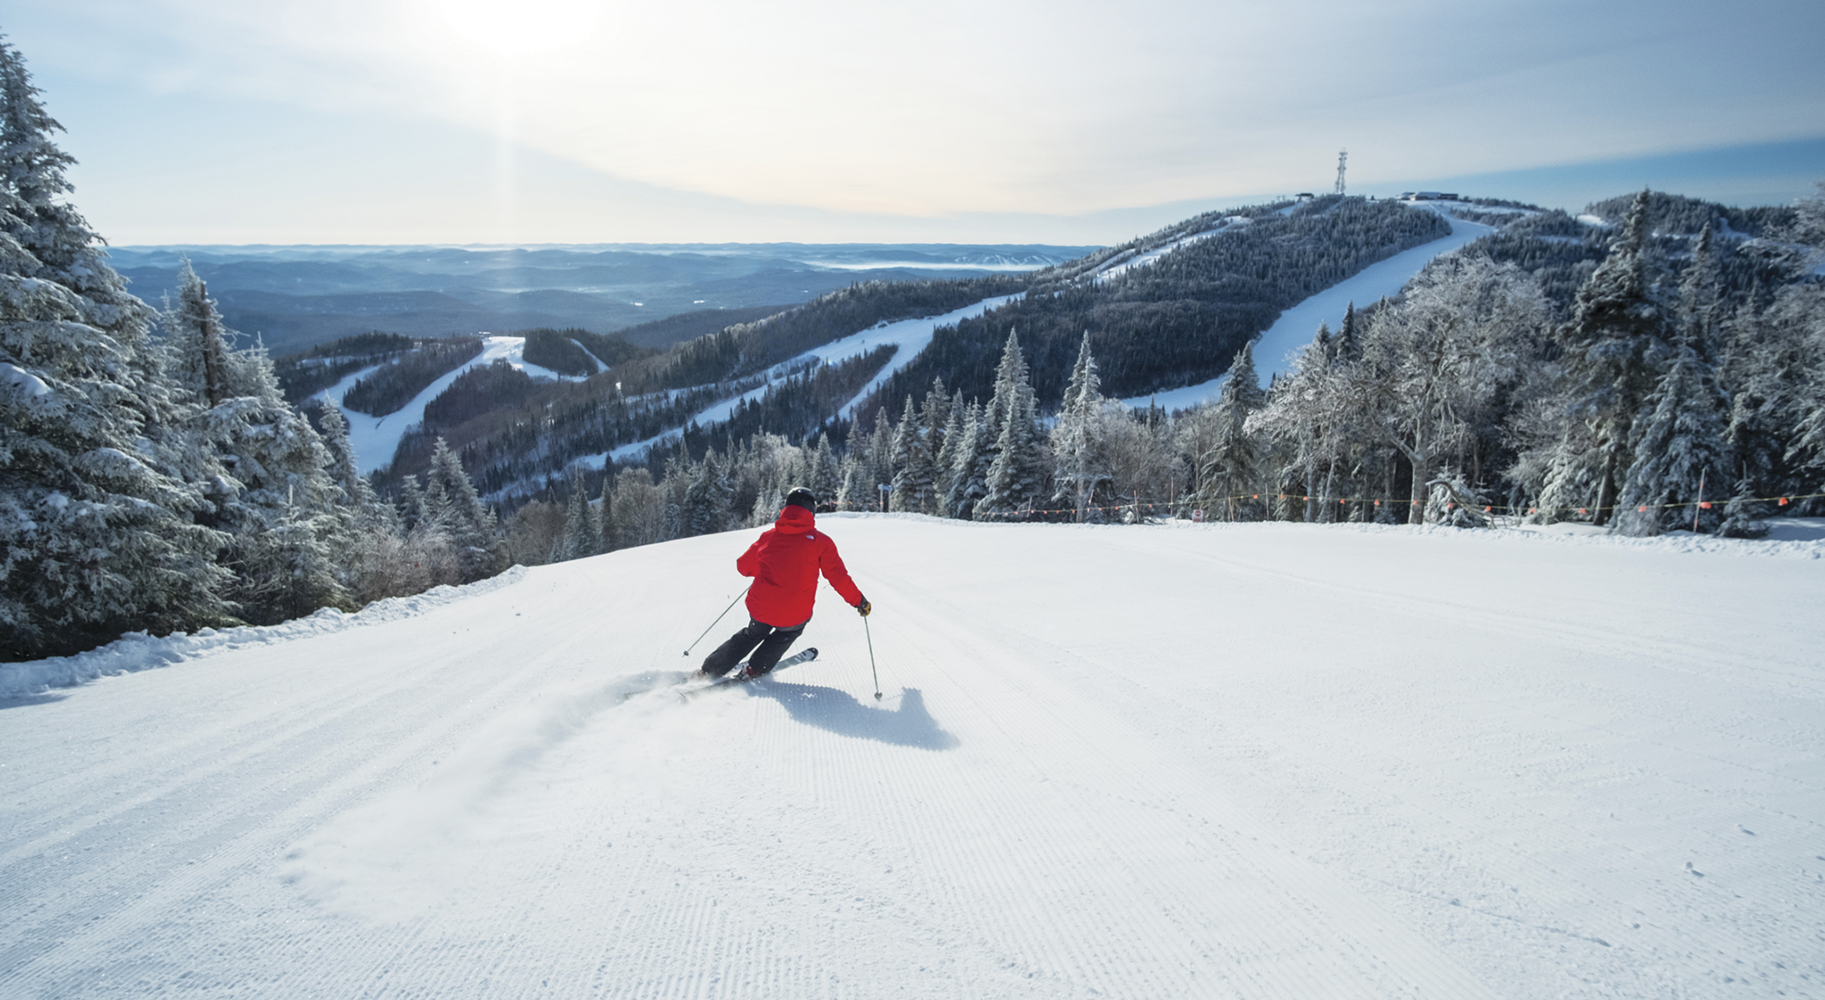 New changes to our 2018-2019 season passes! - Blogue Tremblant